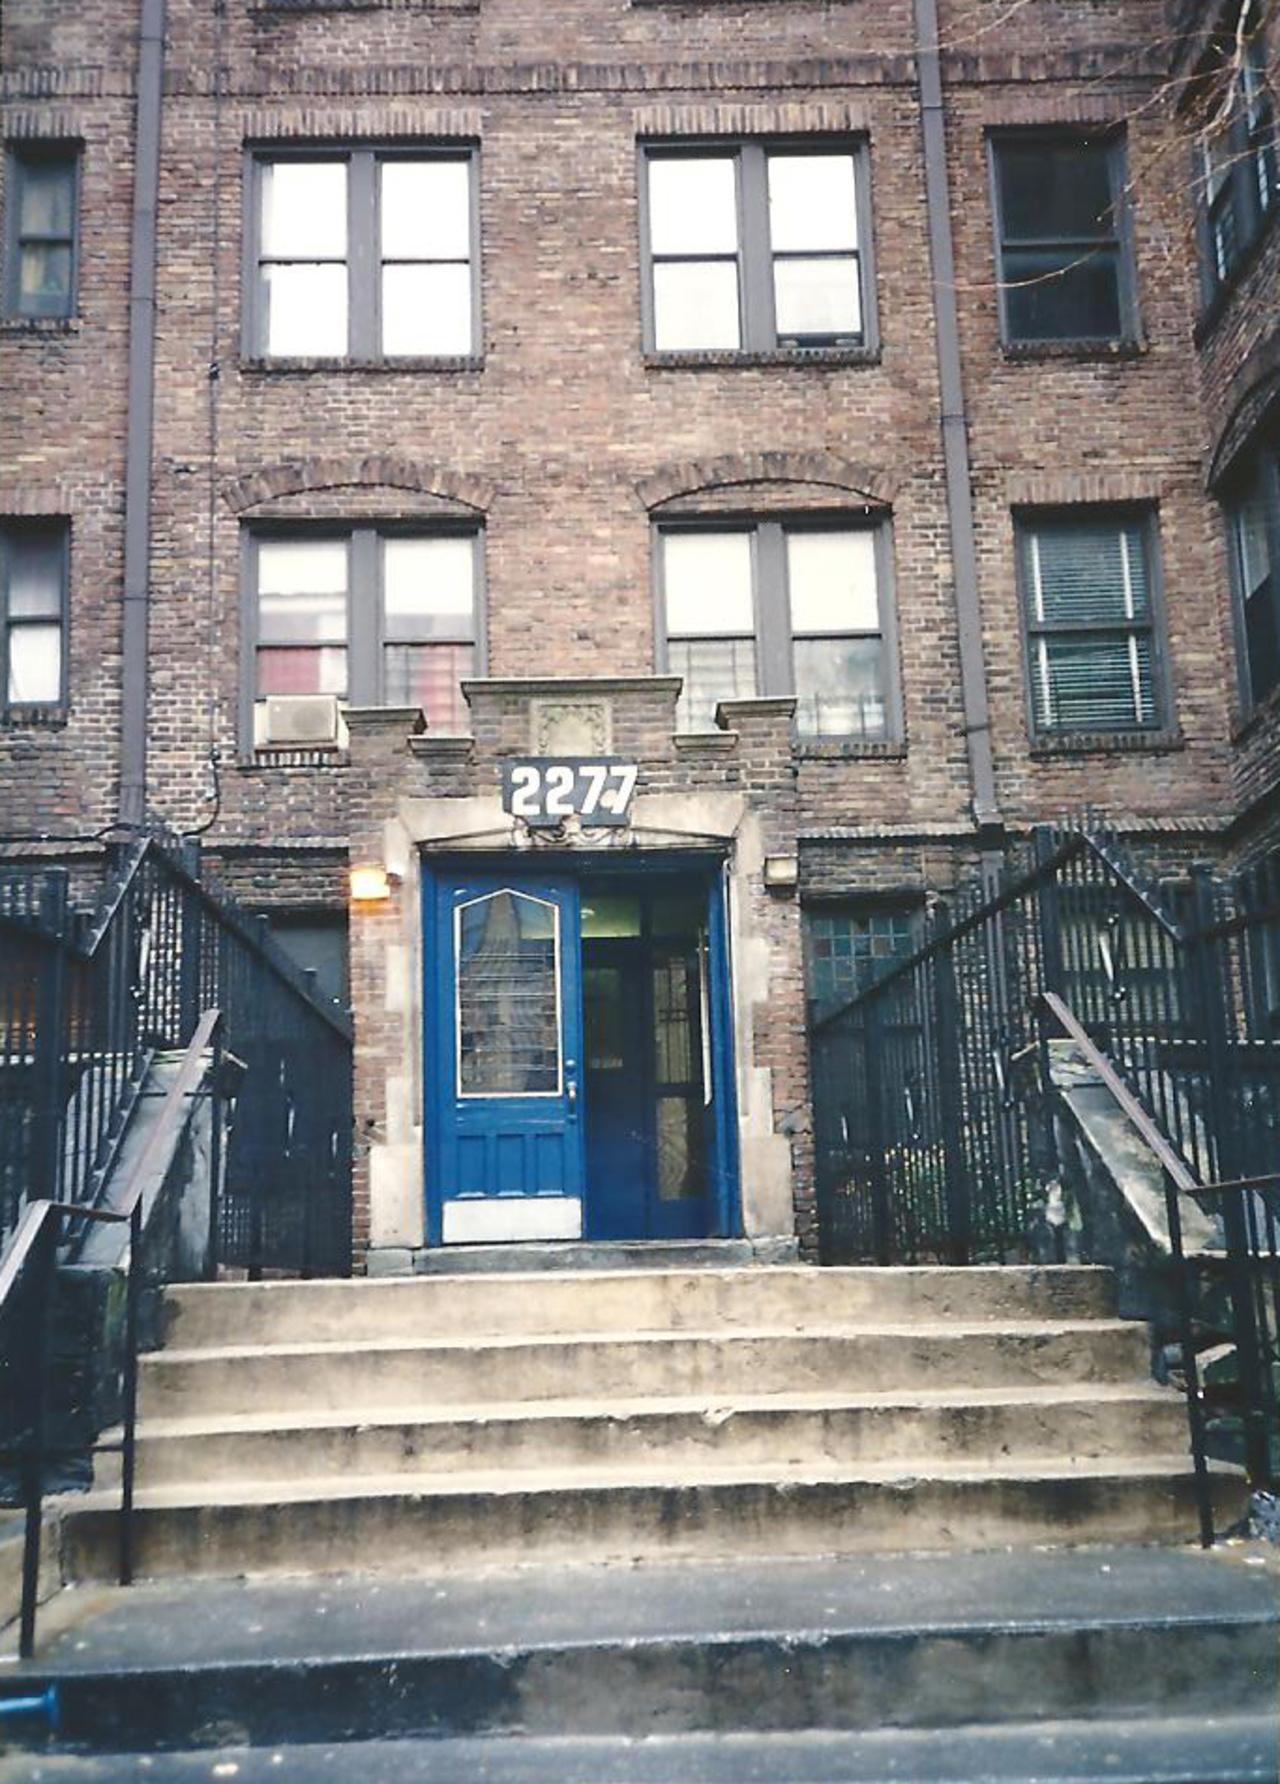 2277 Andrews Avenue, my home for the year.